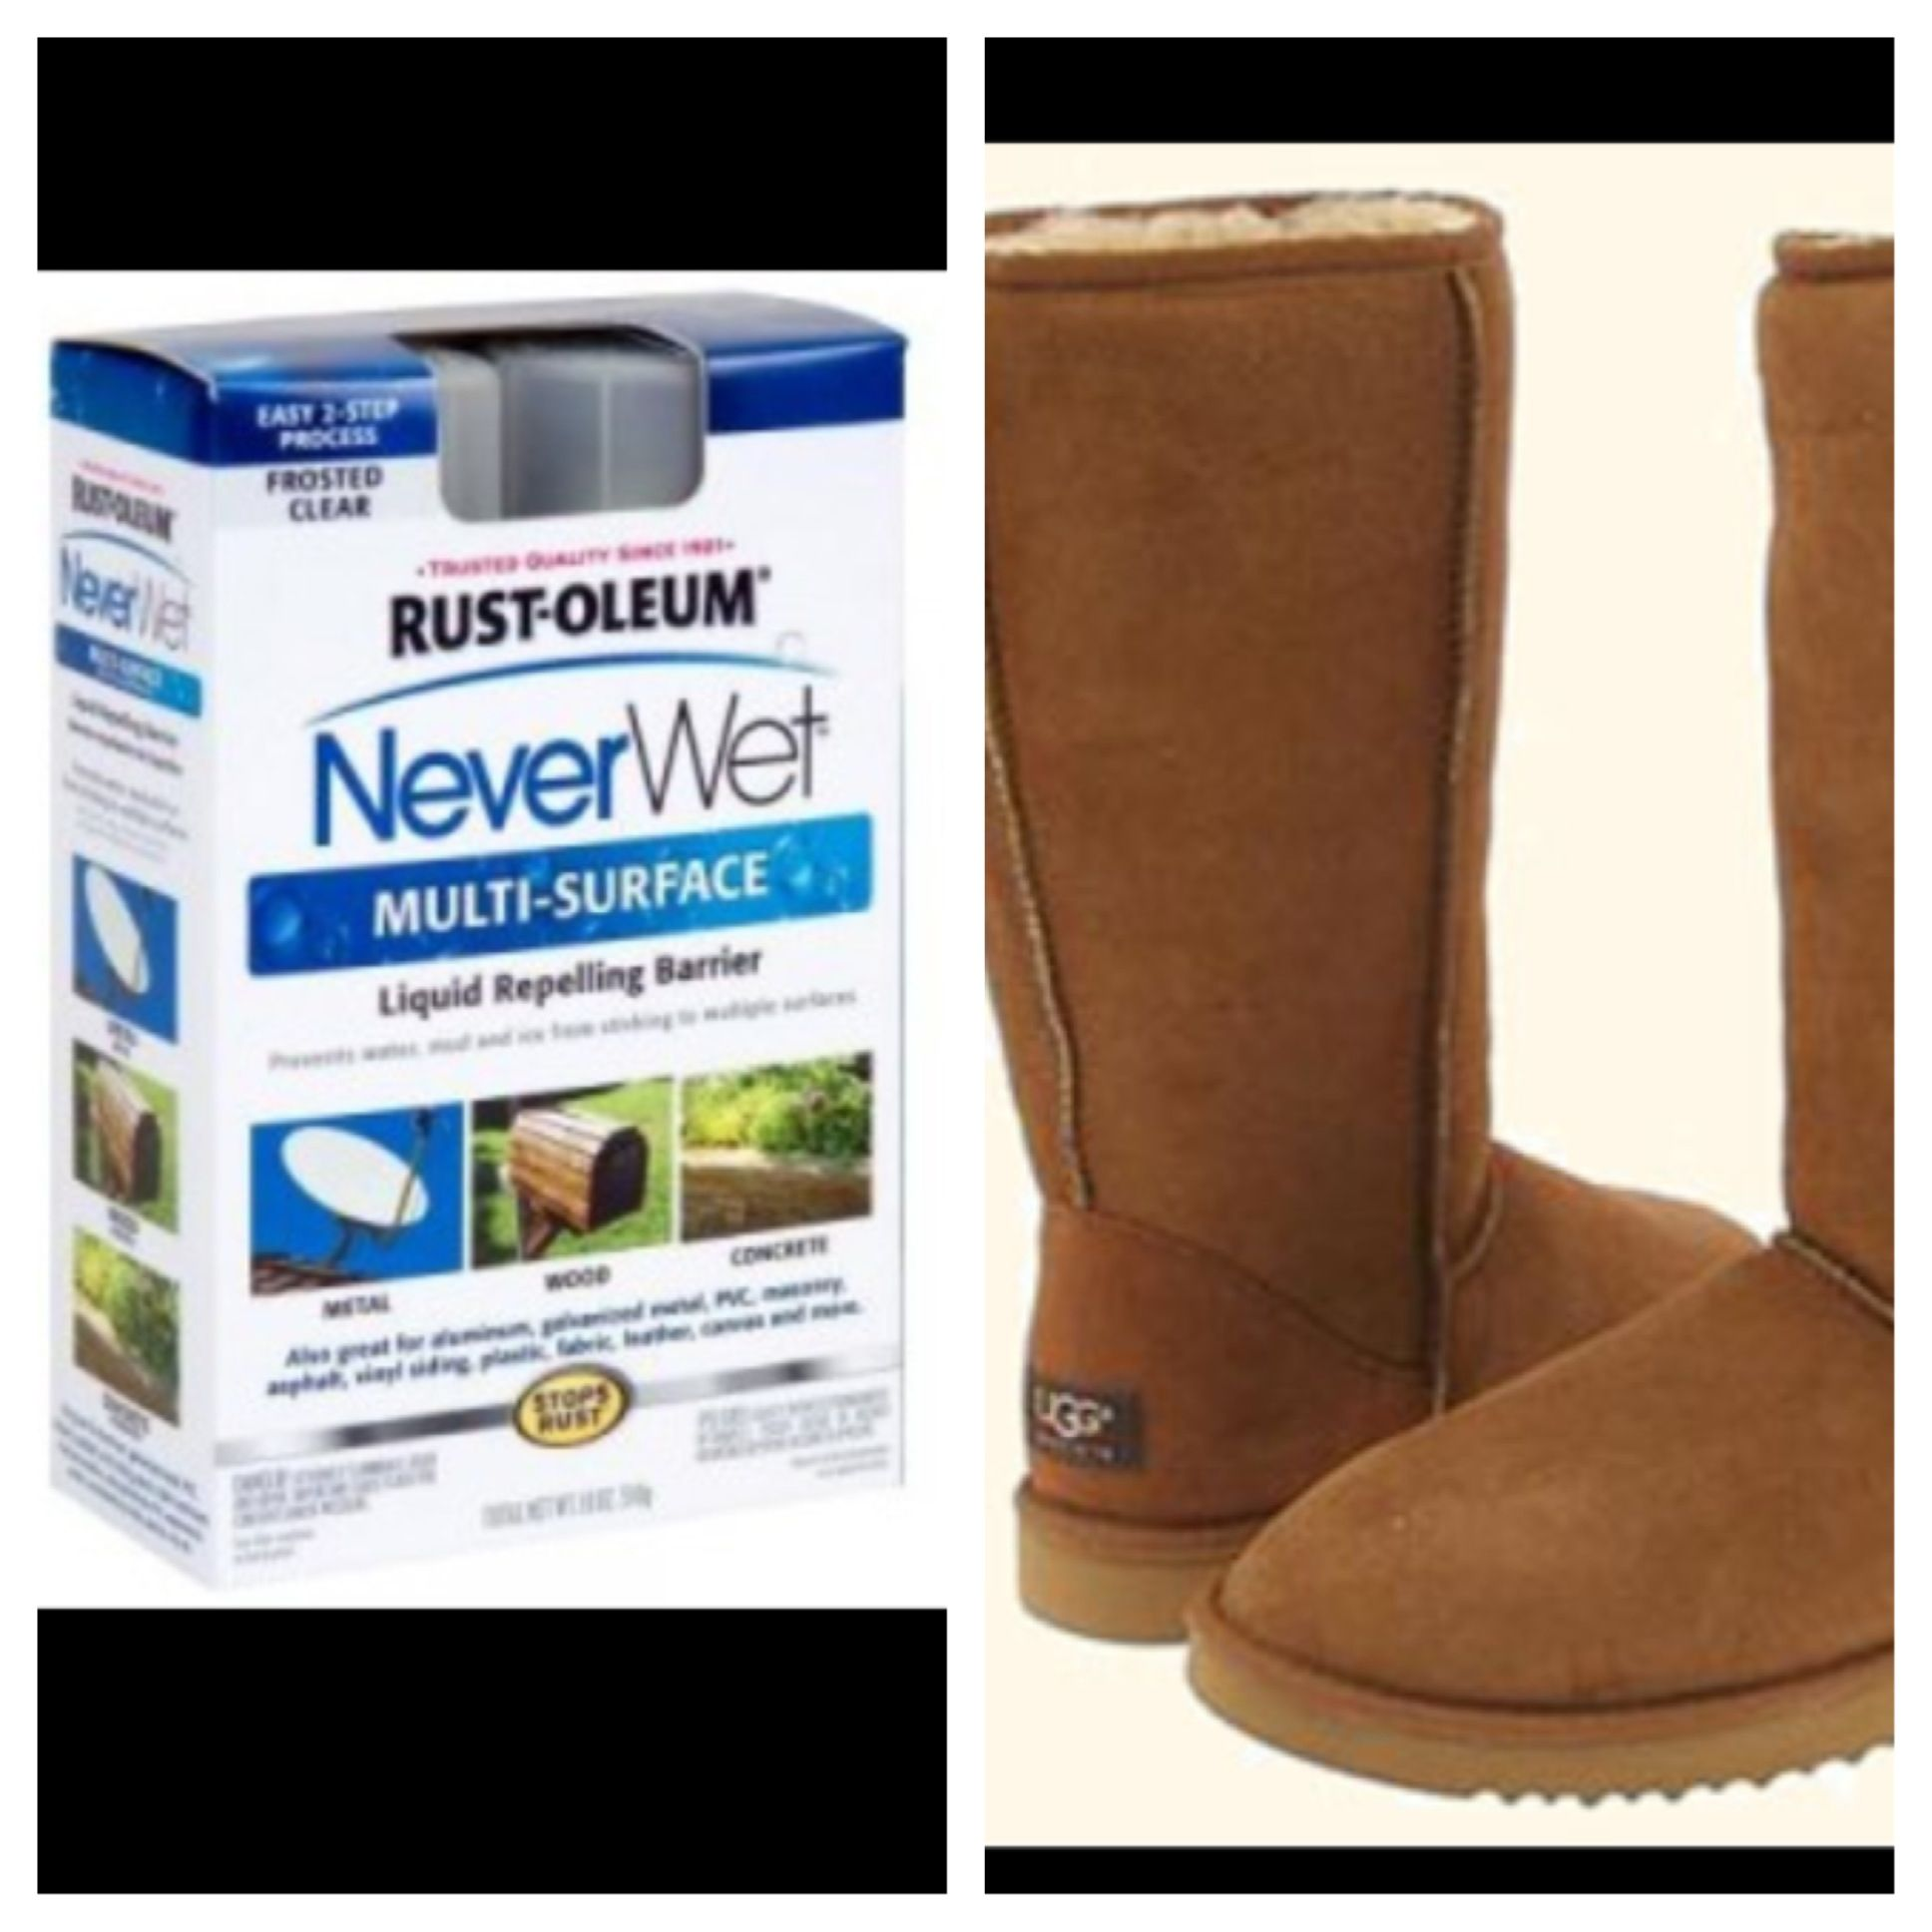 b8820659b4b Boot season is here. Never wet will help with keeping uggs clean ...